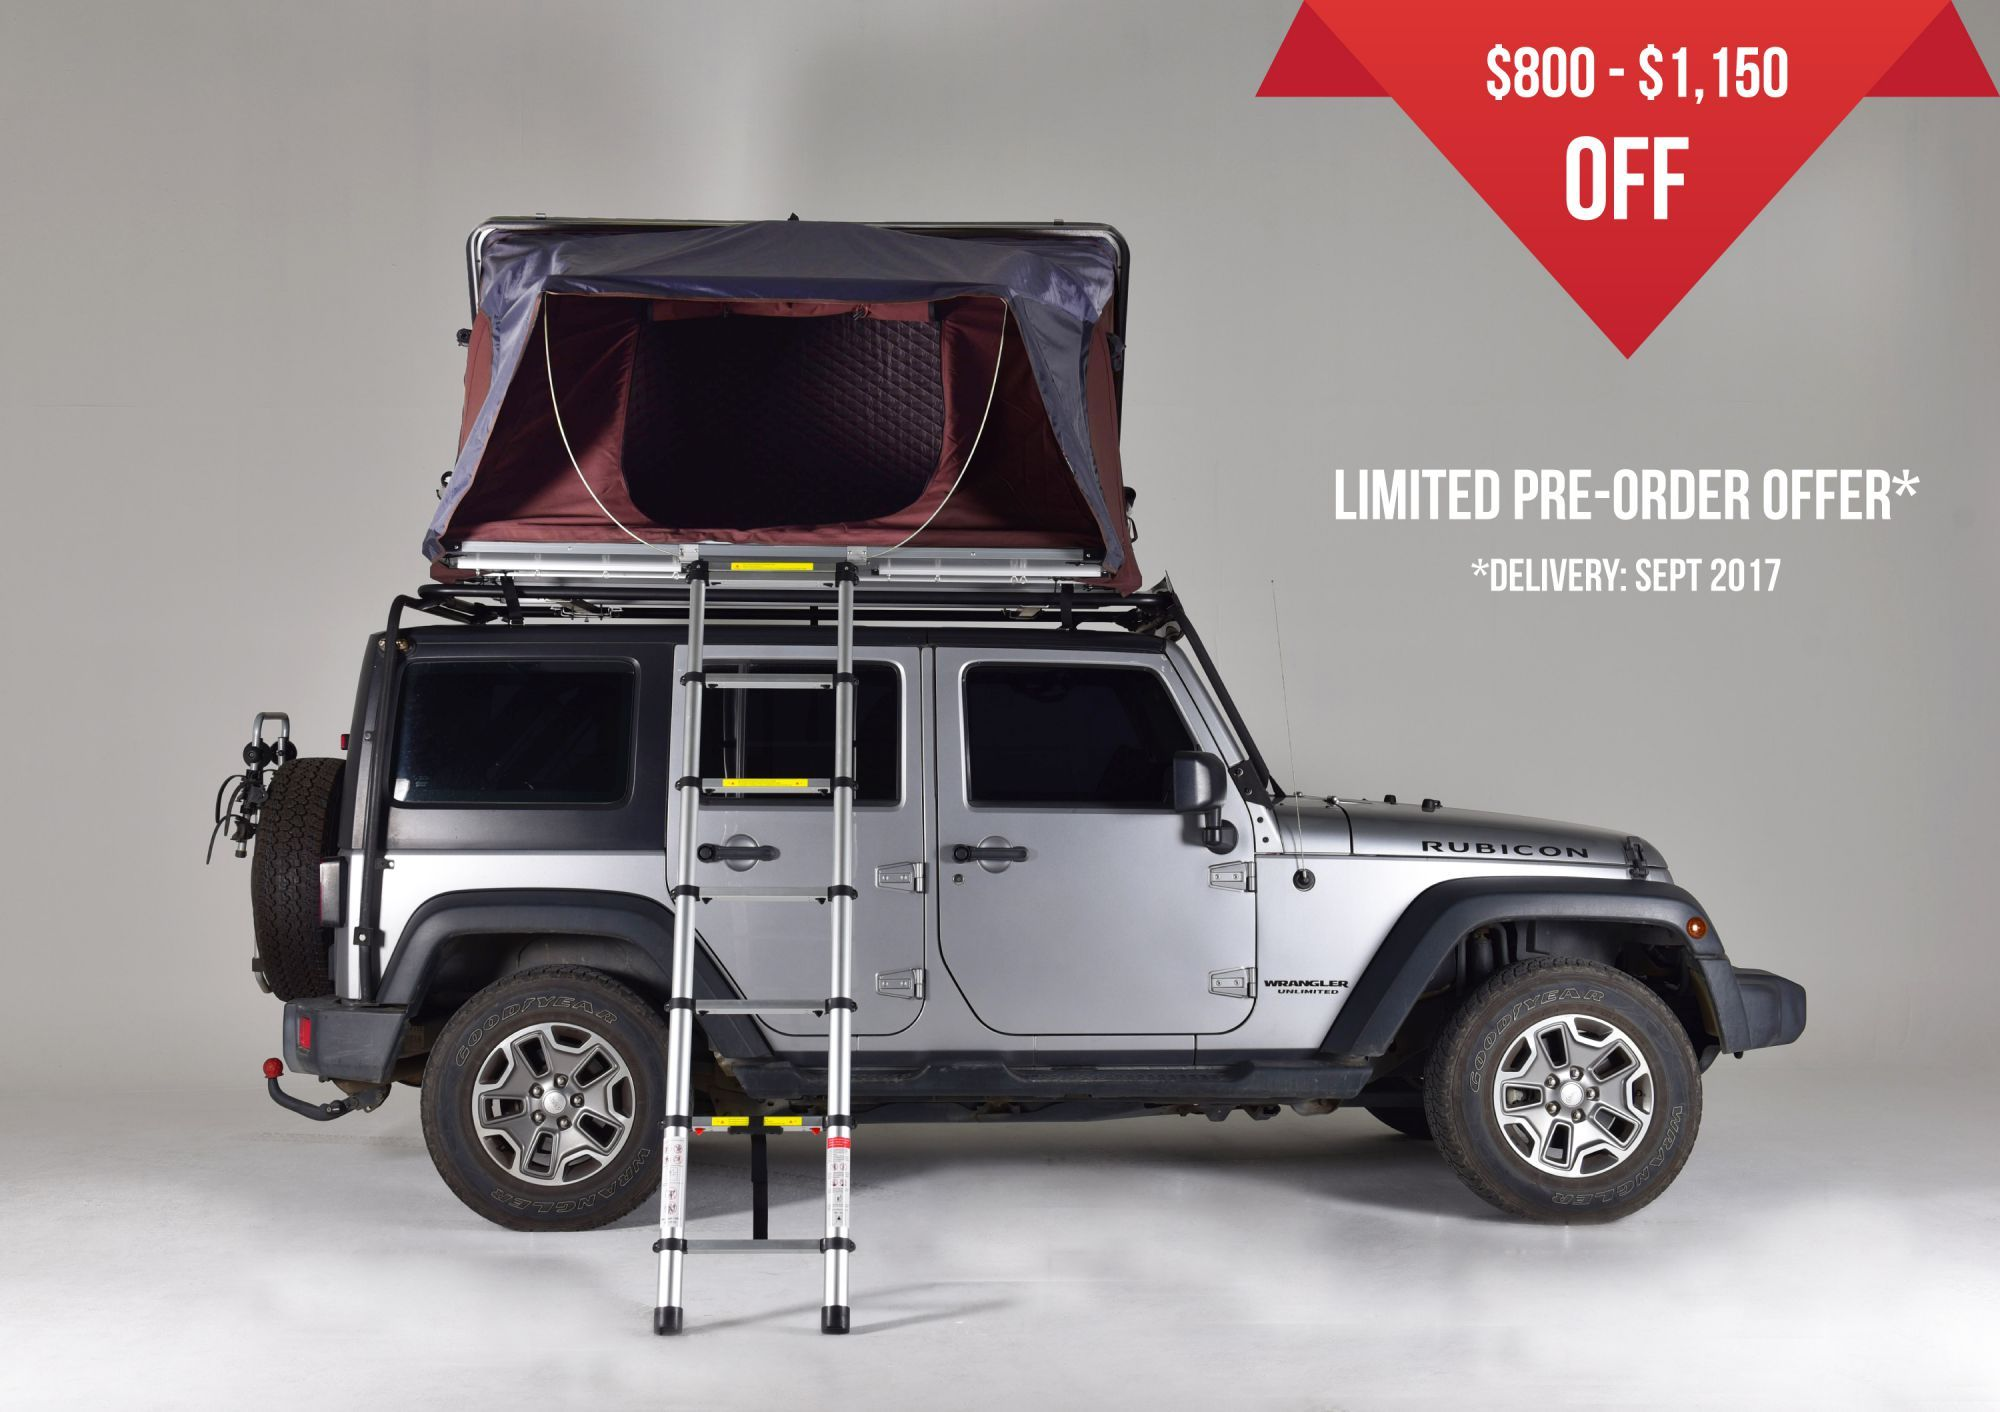 Jeep Wrangler Camper Van Roof Top Tent Ikamper Campervan Ideas